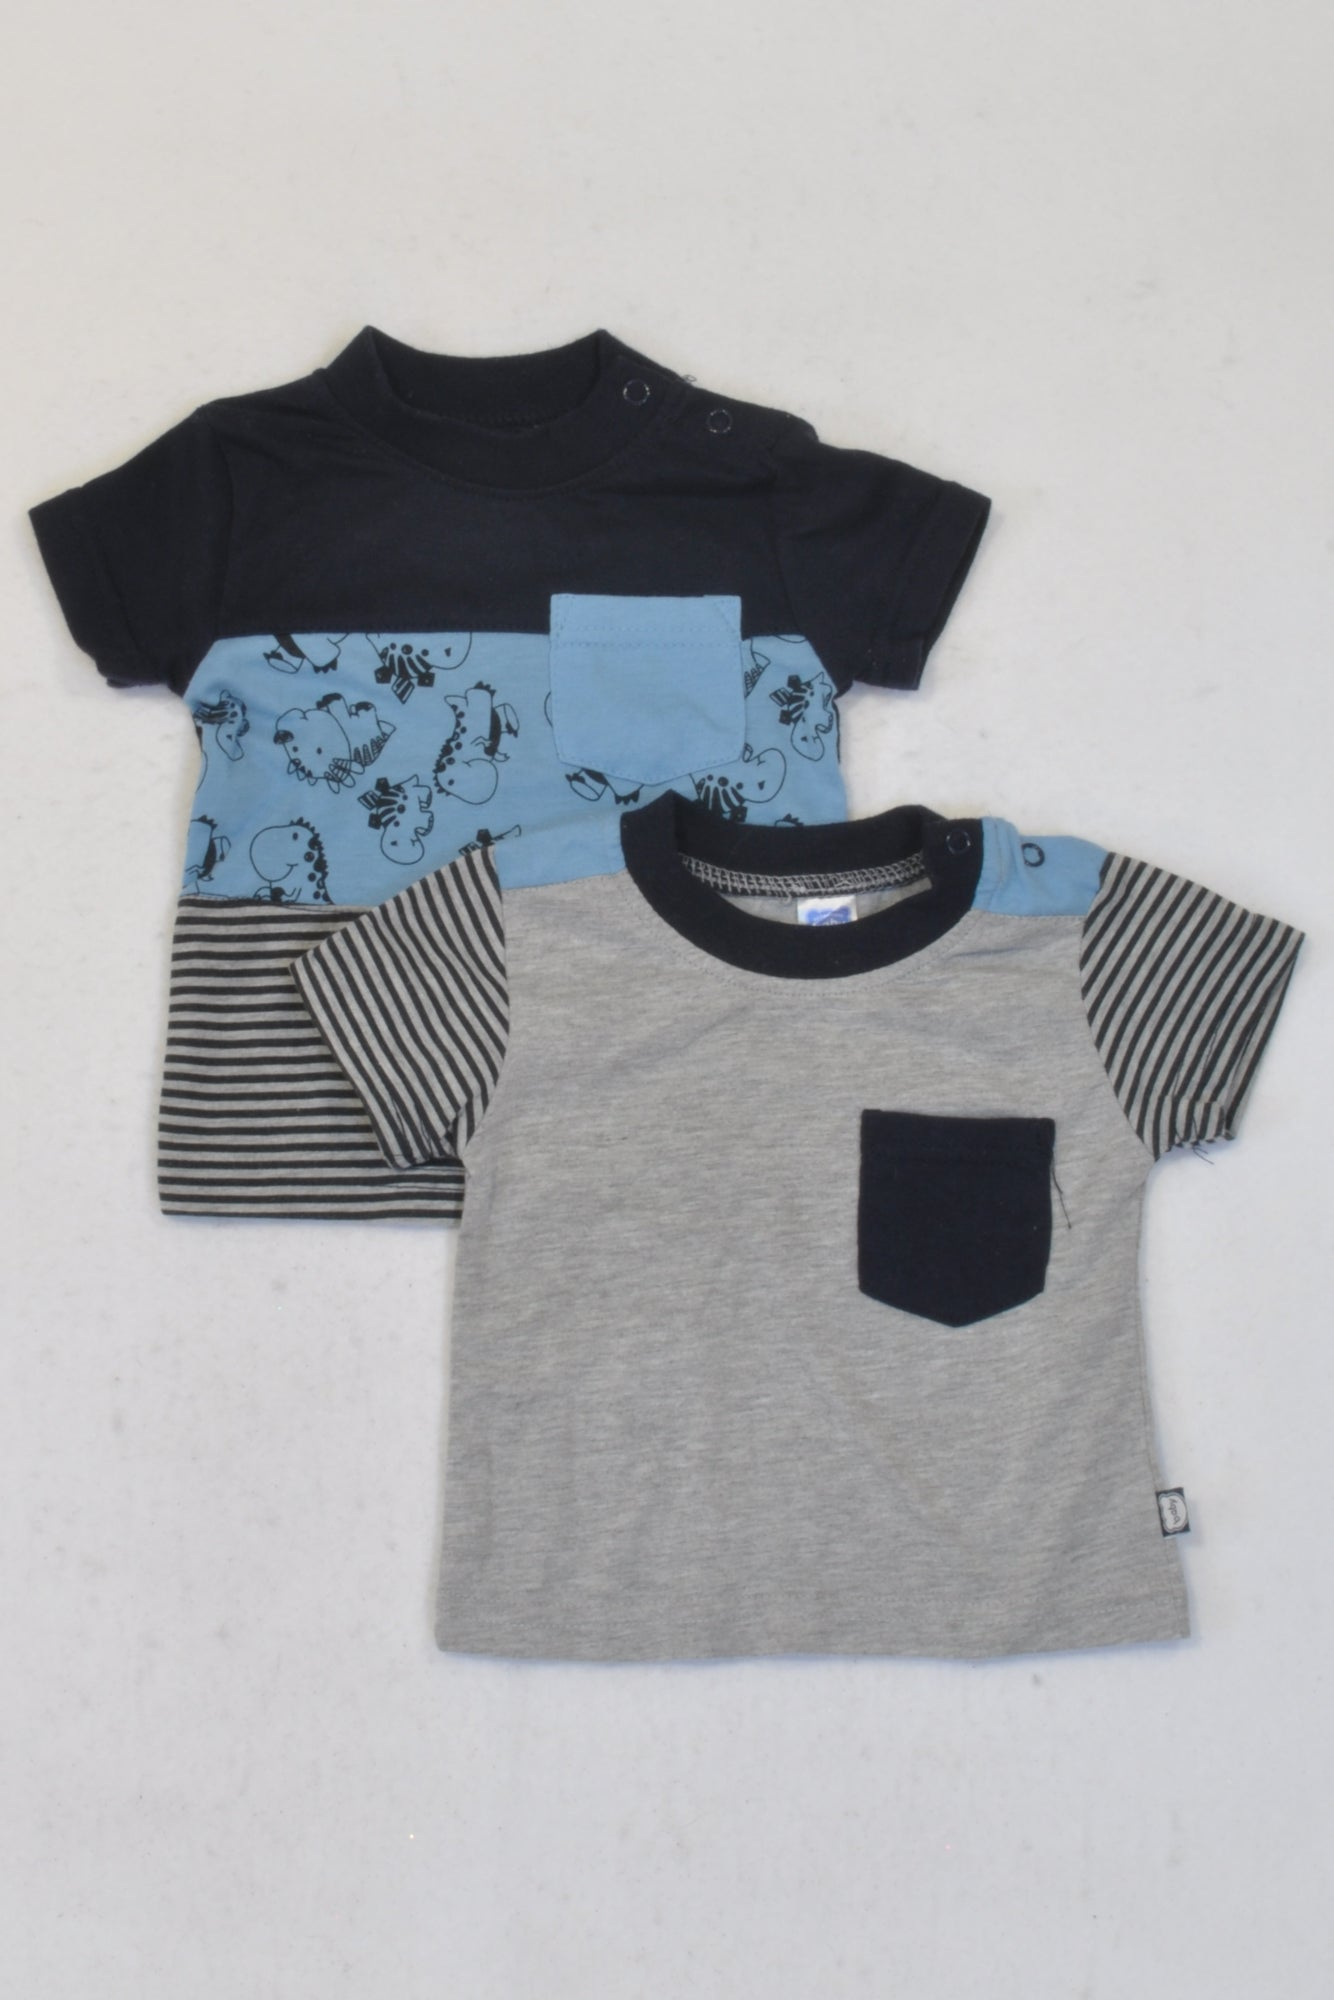 Ackermans 2 Pack Navy & Grey Dino T-Shirts Boys 0-3 months